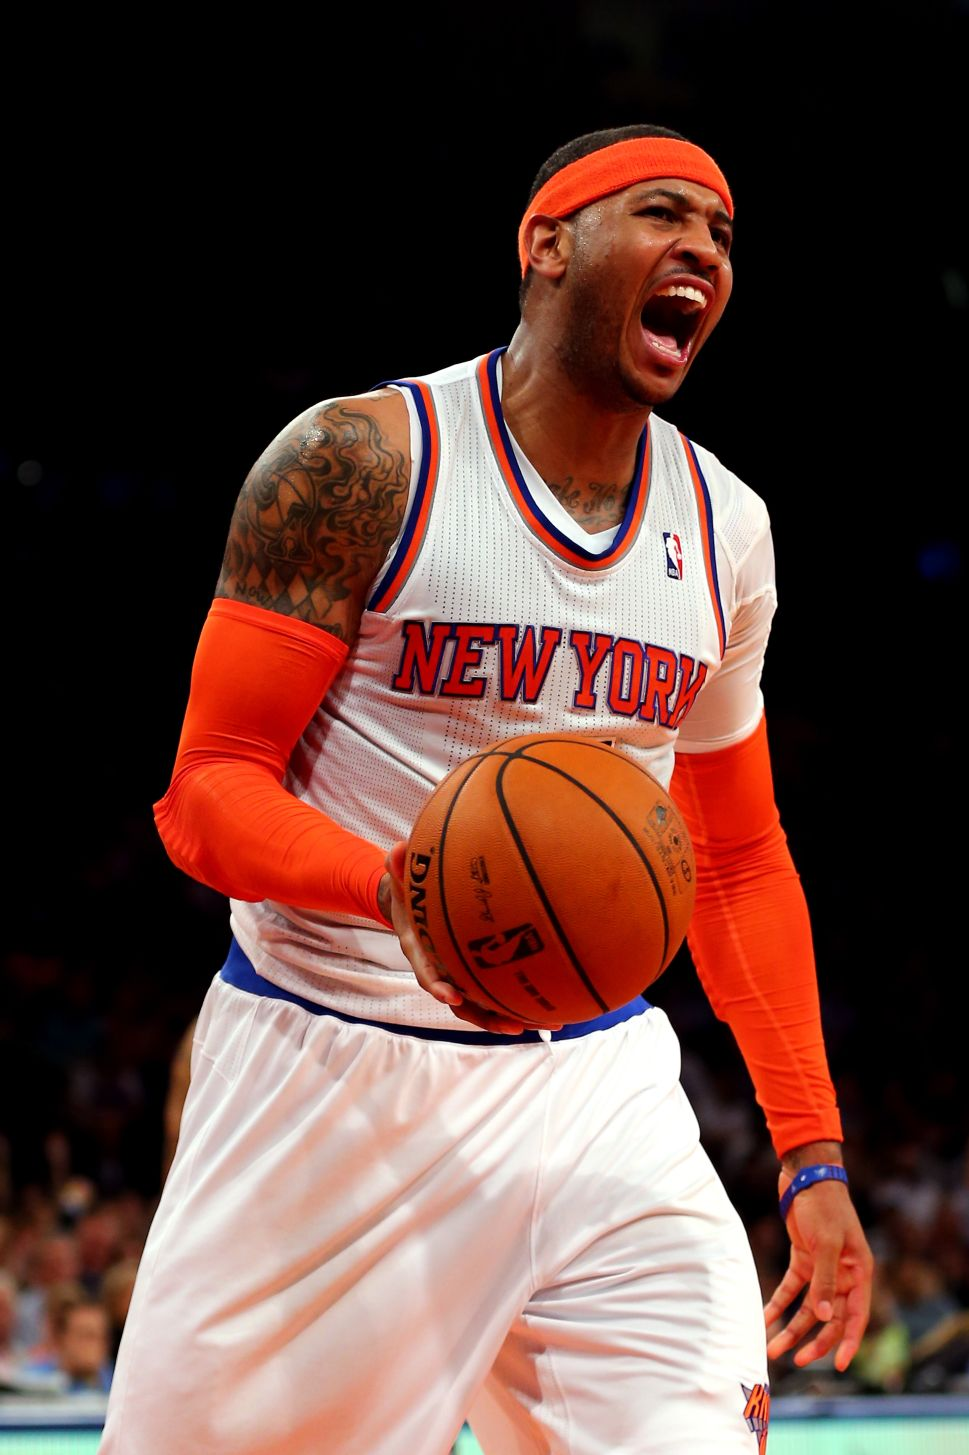 The Importance of Being Melo